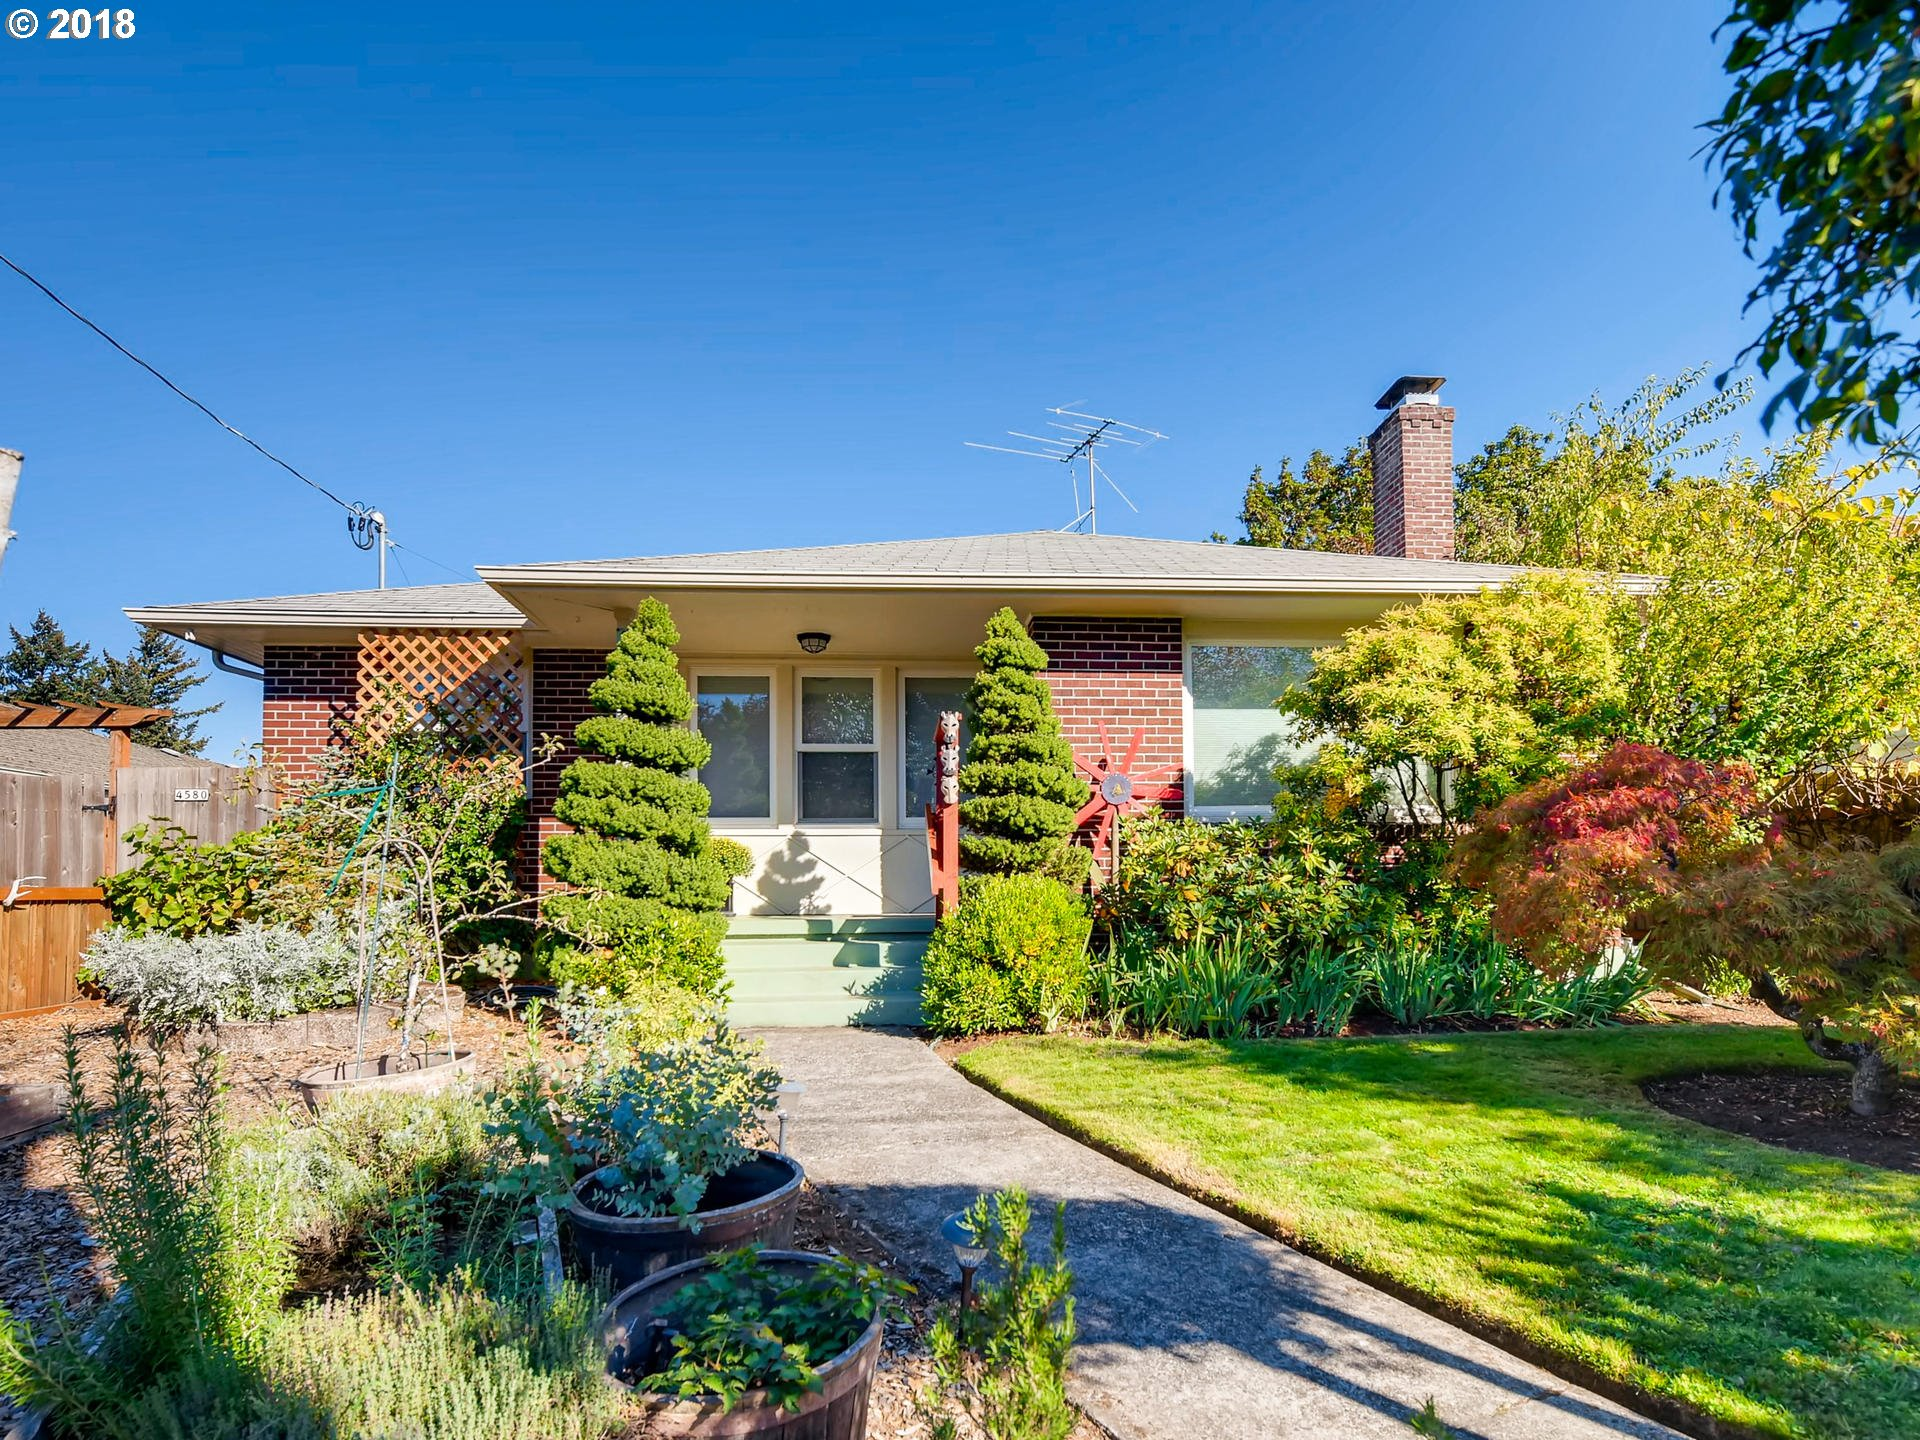 2654 sq. ft 2 bedrooms 2 bathrooms  House For Sale,Portland, OR